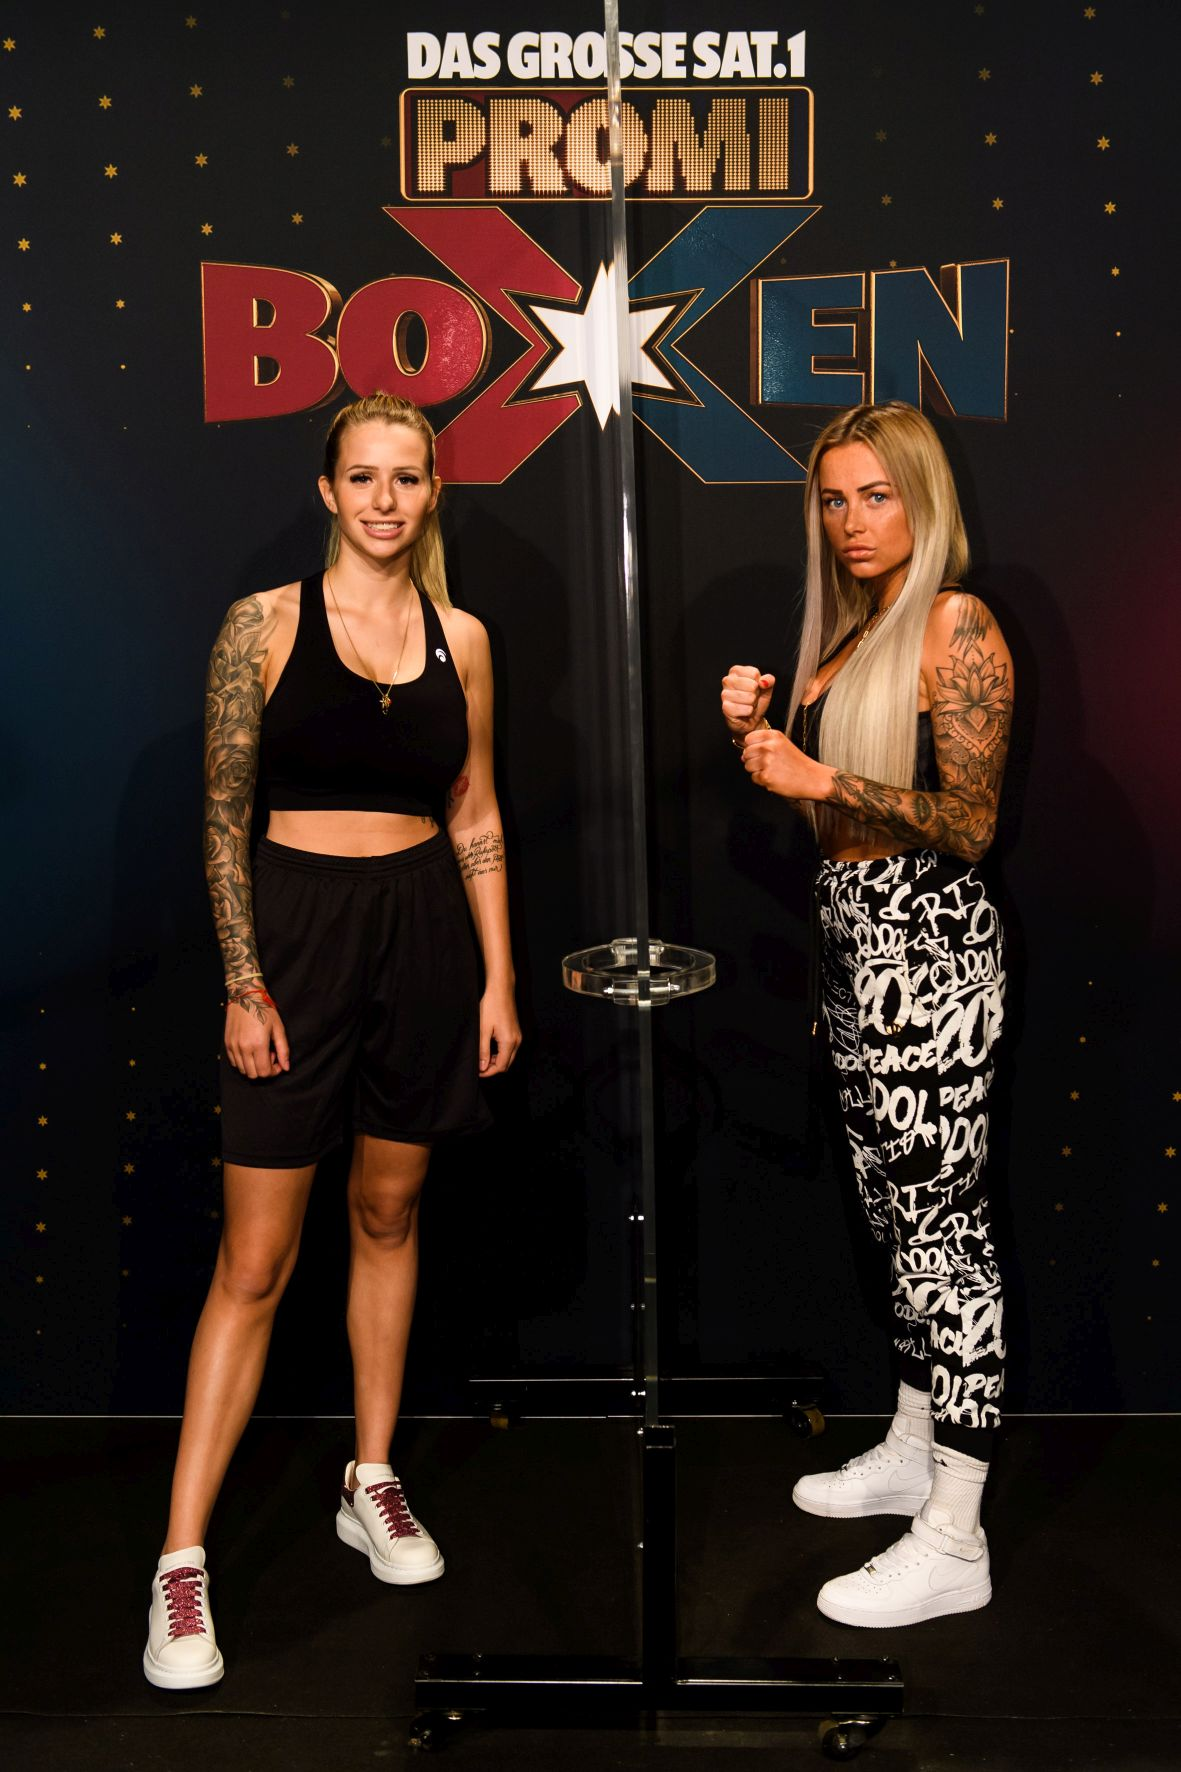 Promiboxen 2020 - Carina Spack vs. Jade Britani Übach